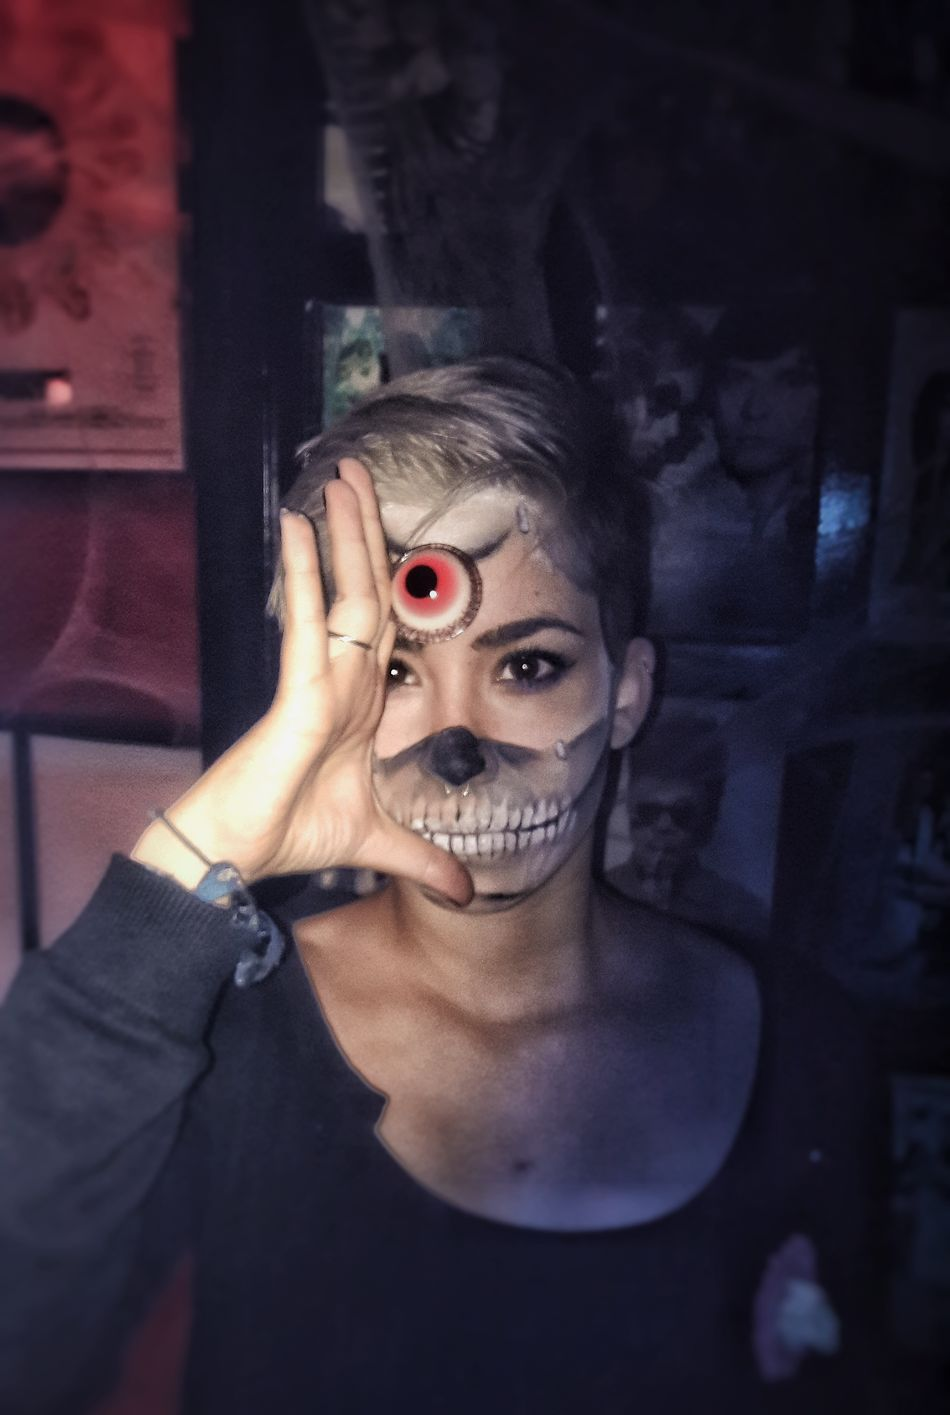 Cyclop skull Halloweennight People Costume Makeup Indoors  Pub Night Party Halloween Creepy Faces Girl Pretty Creepy